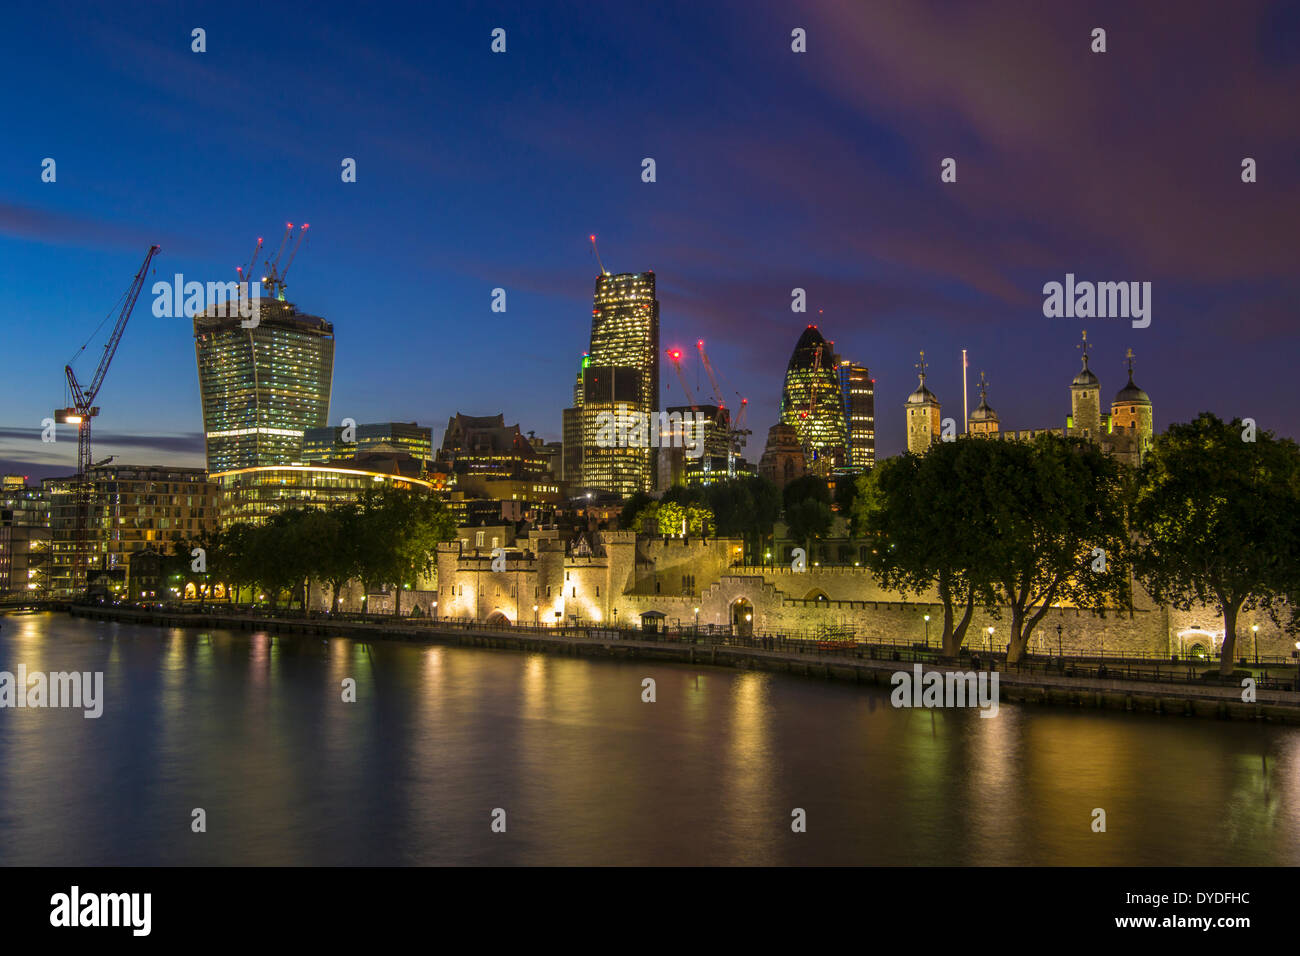 A view of London skyline from Tower Bridge. - Stock Image